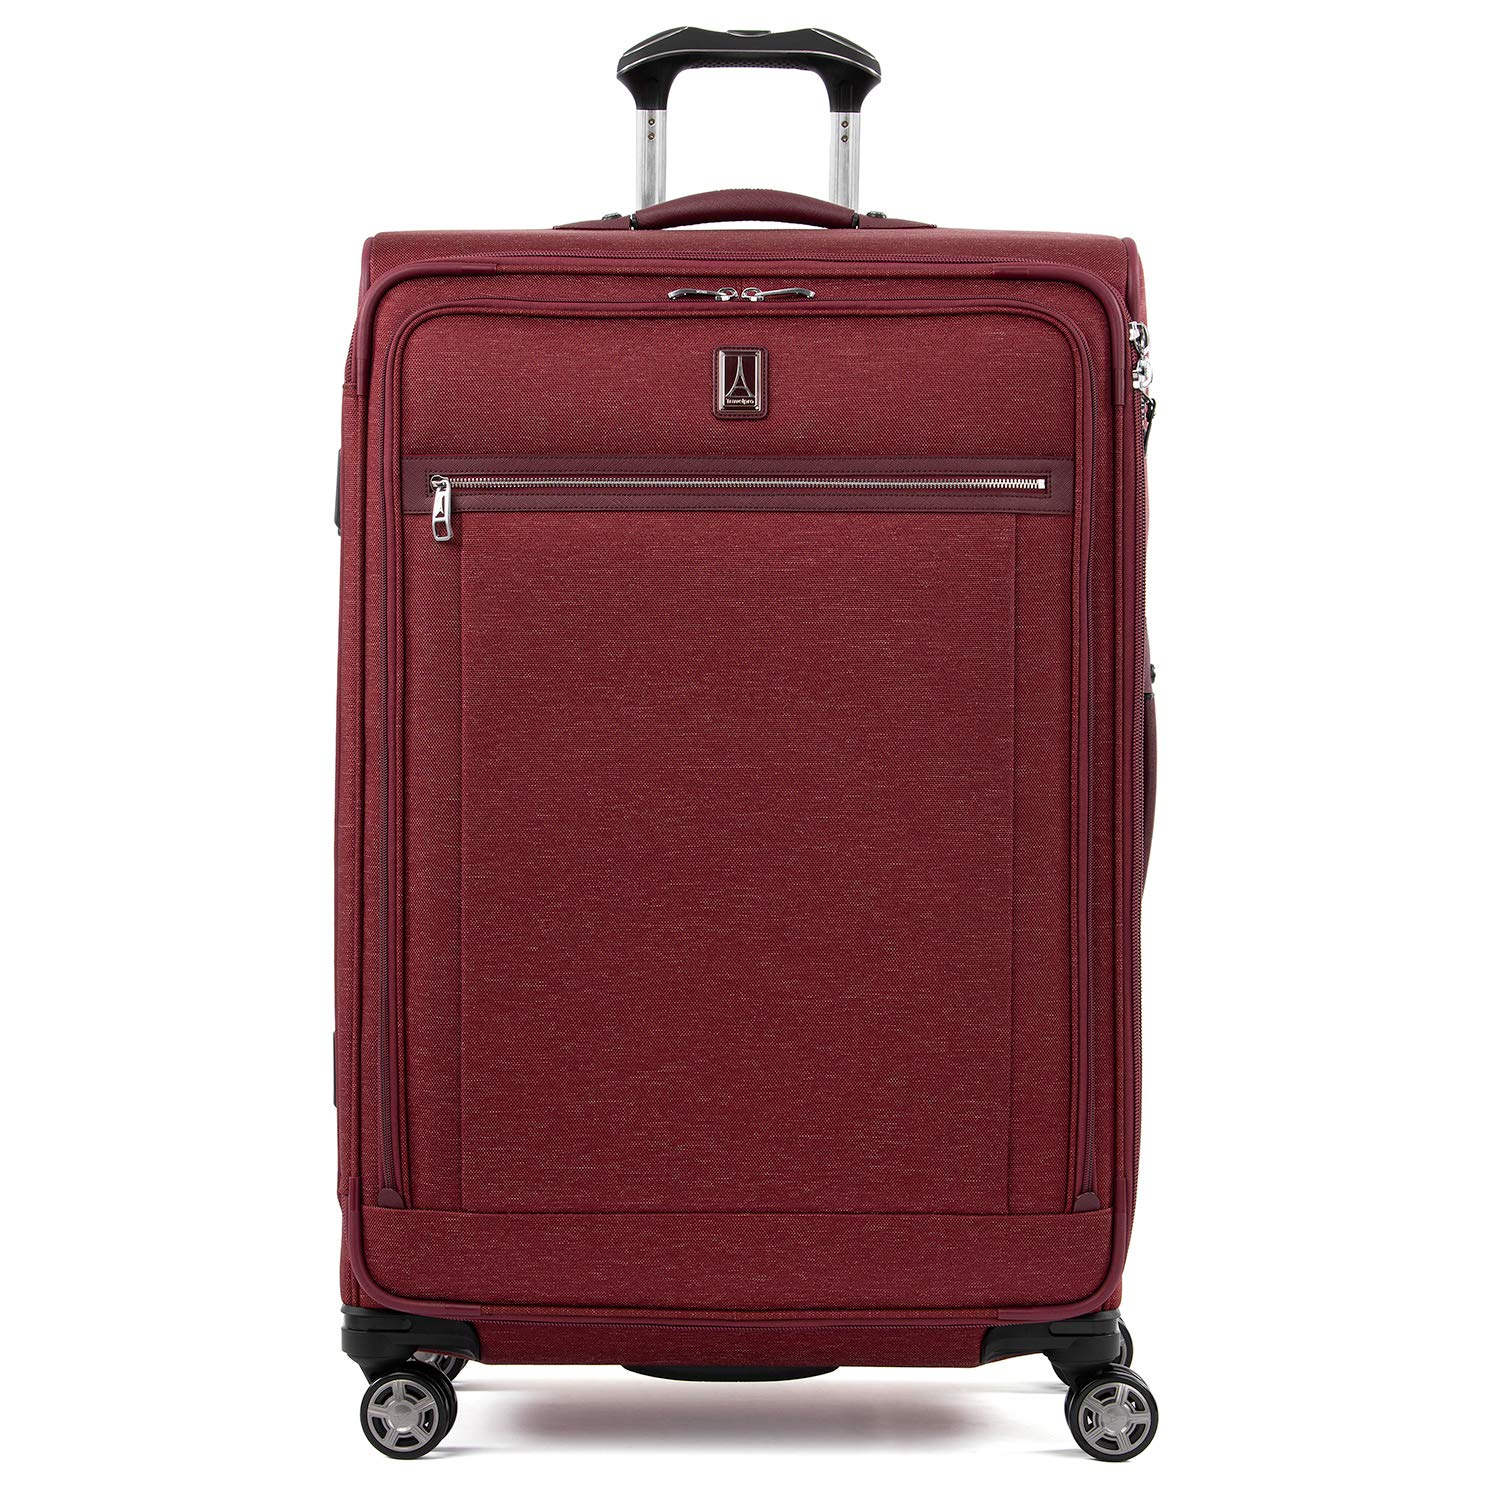 Travelpro Luggage Checked Large, Bordeaux by Travelpro